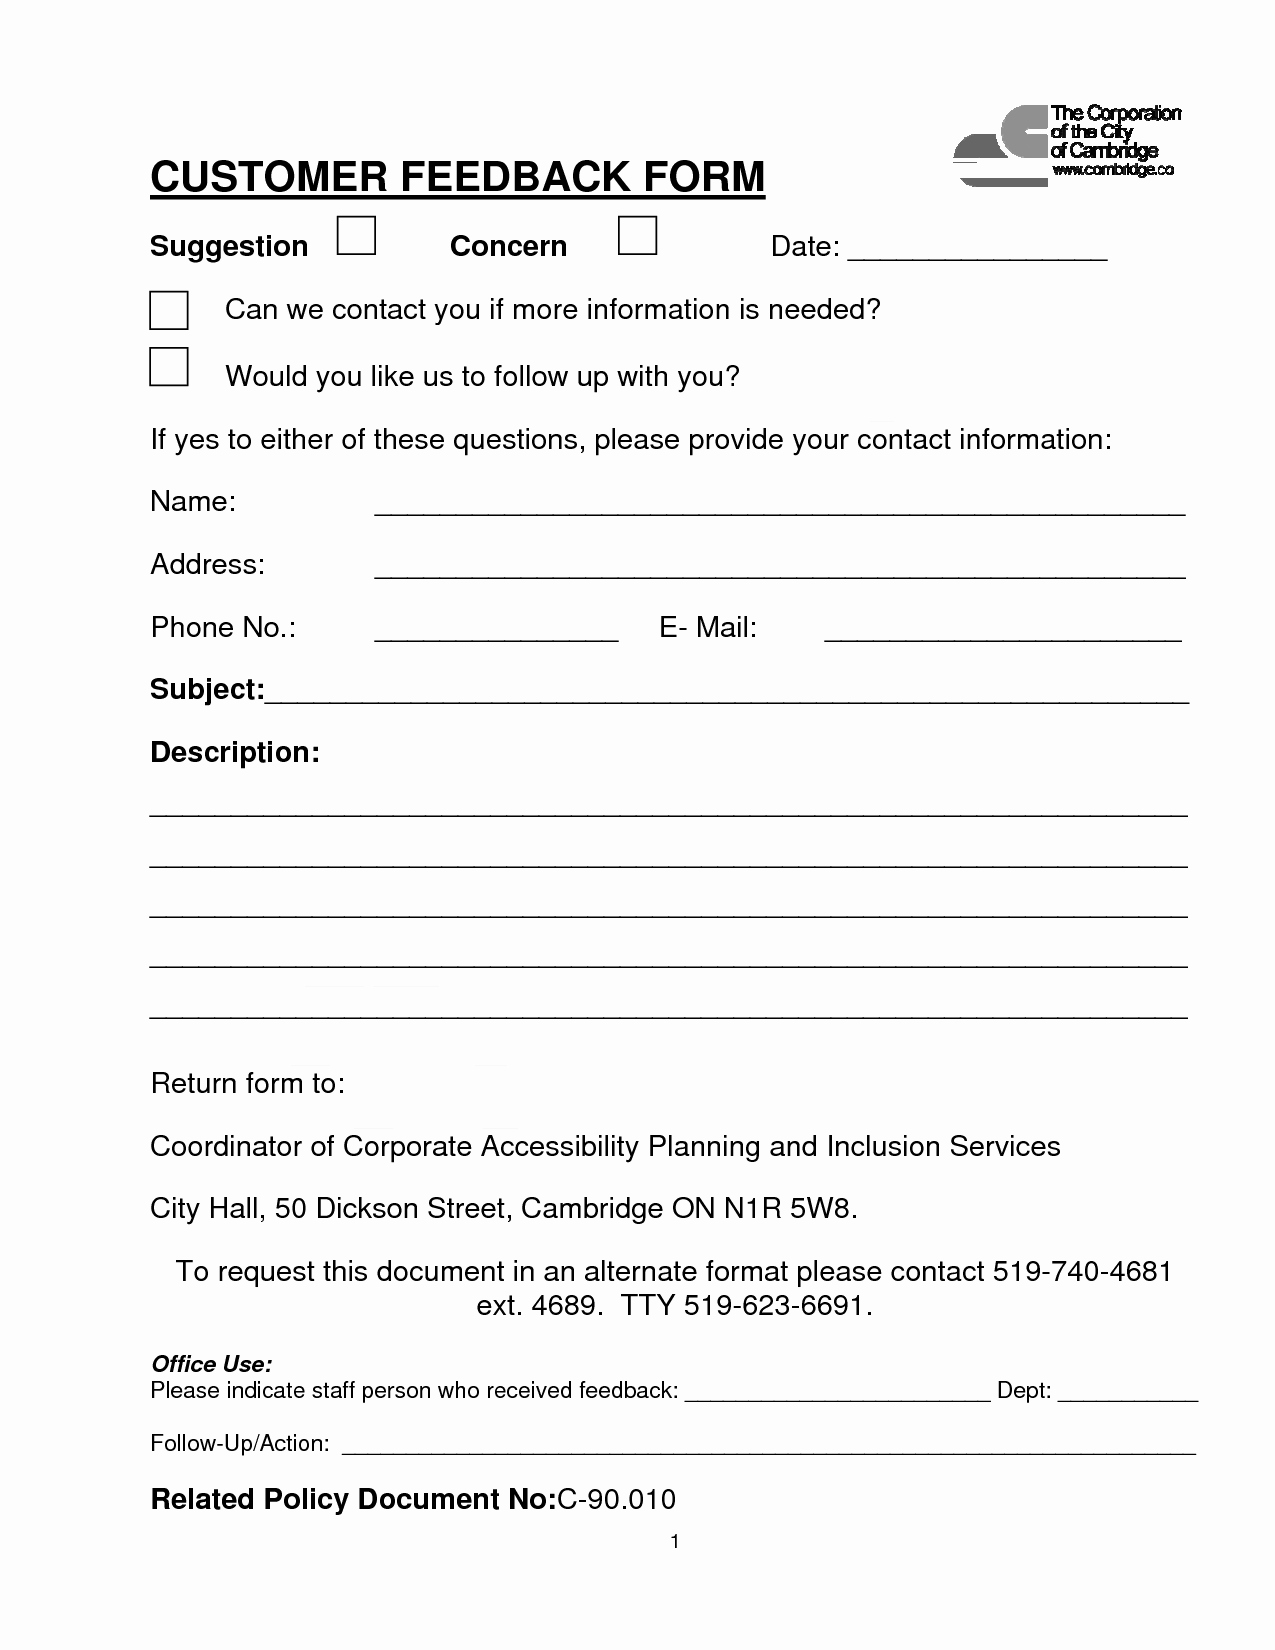 Feedback form Template Word Lovely Image Result for Customer Feedback form Template Word